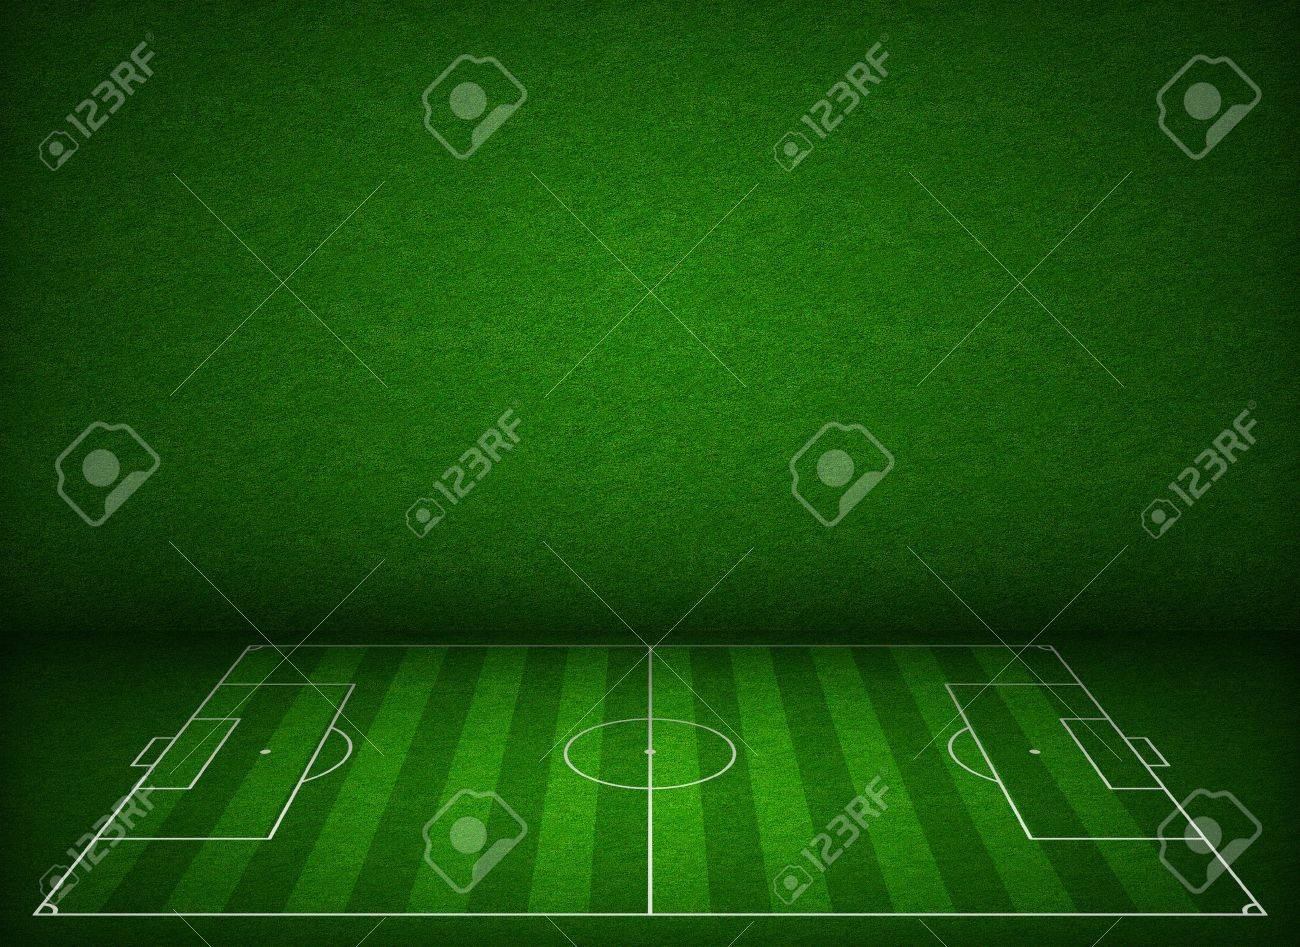 Soccer or football field or pitch side view with proper markings and proportions according standards Stock Photo - 17847912